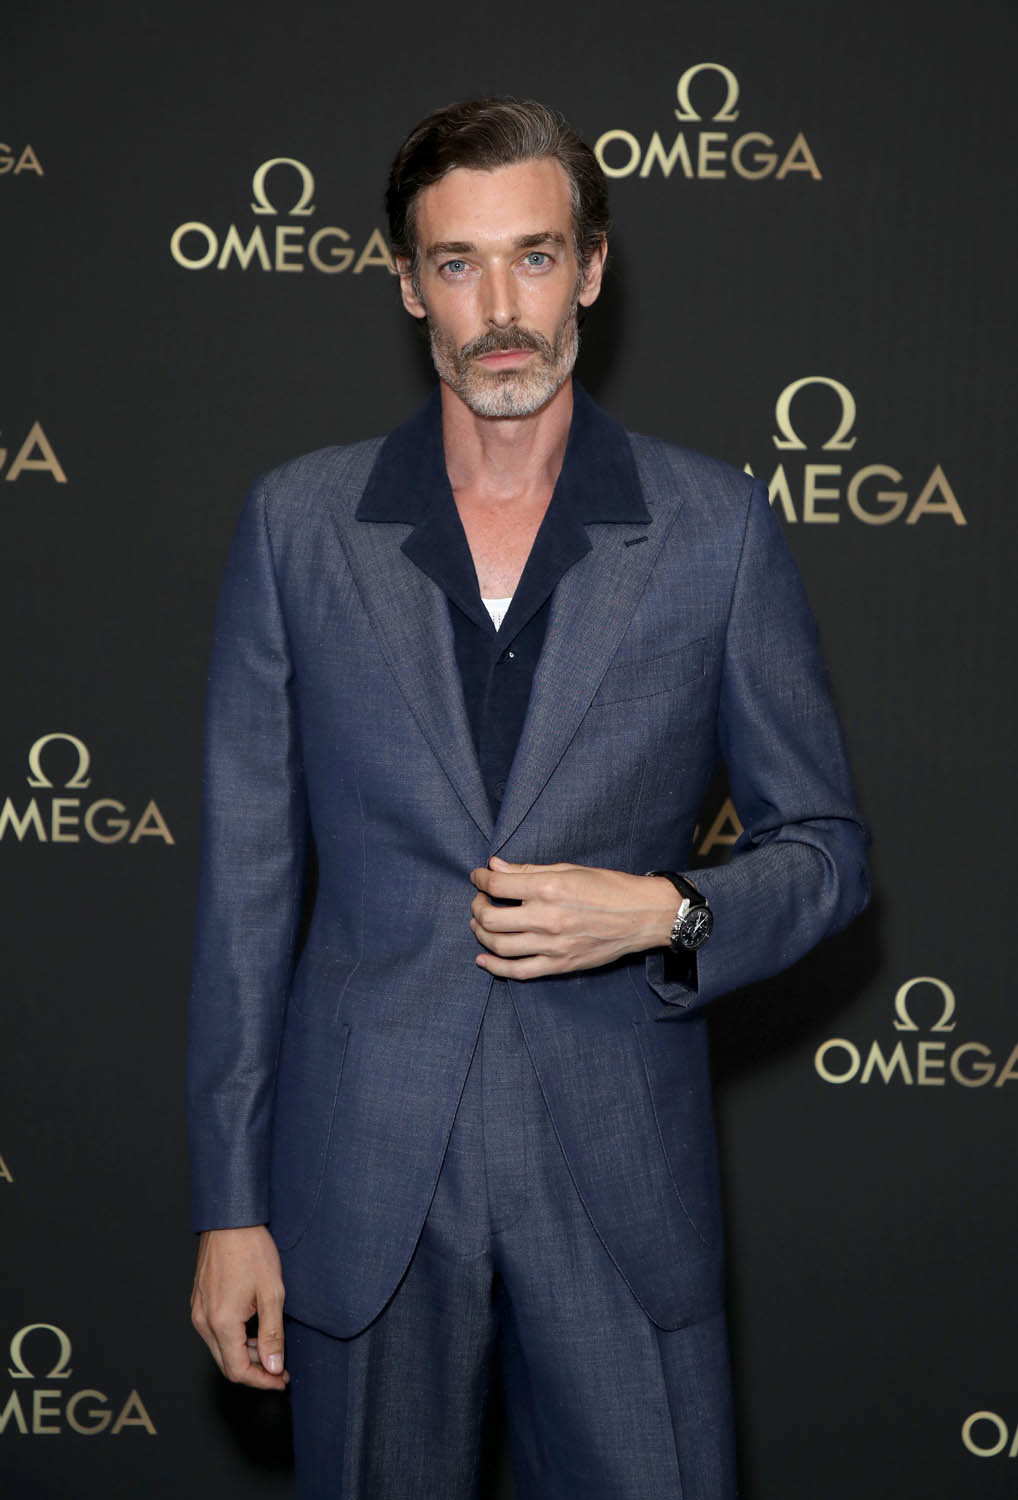 LONDON, ENGLAND - JULY 11: Richard Biedul attends the OMEGA 50th anniversary Moon Landing dinner at Television Centre on July 11, 2019 in London, England. (Photo by Mike Marsland/Getty Images for OMEGA)